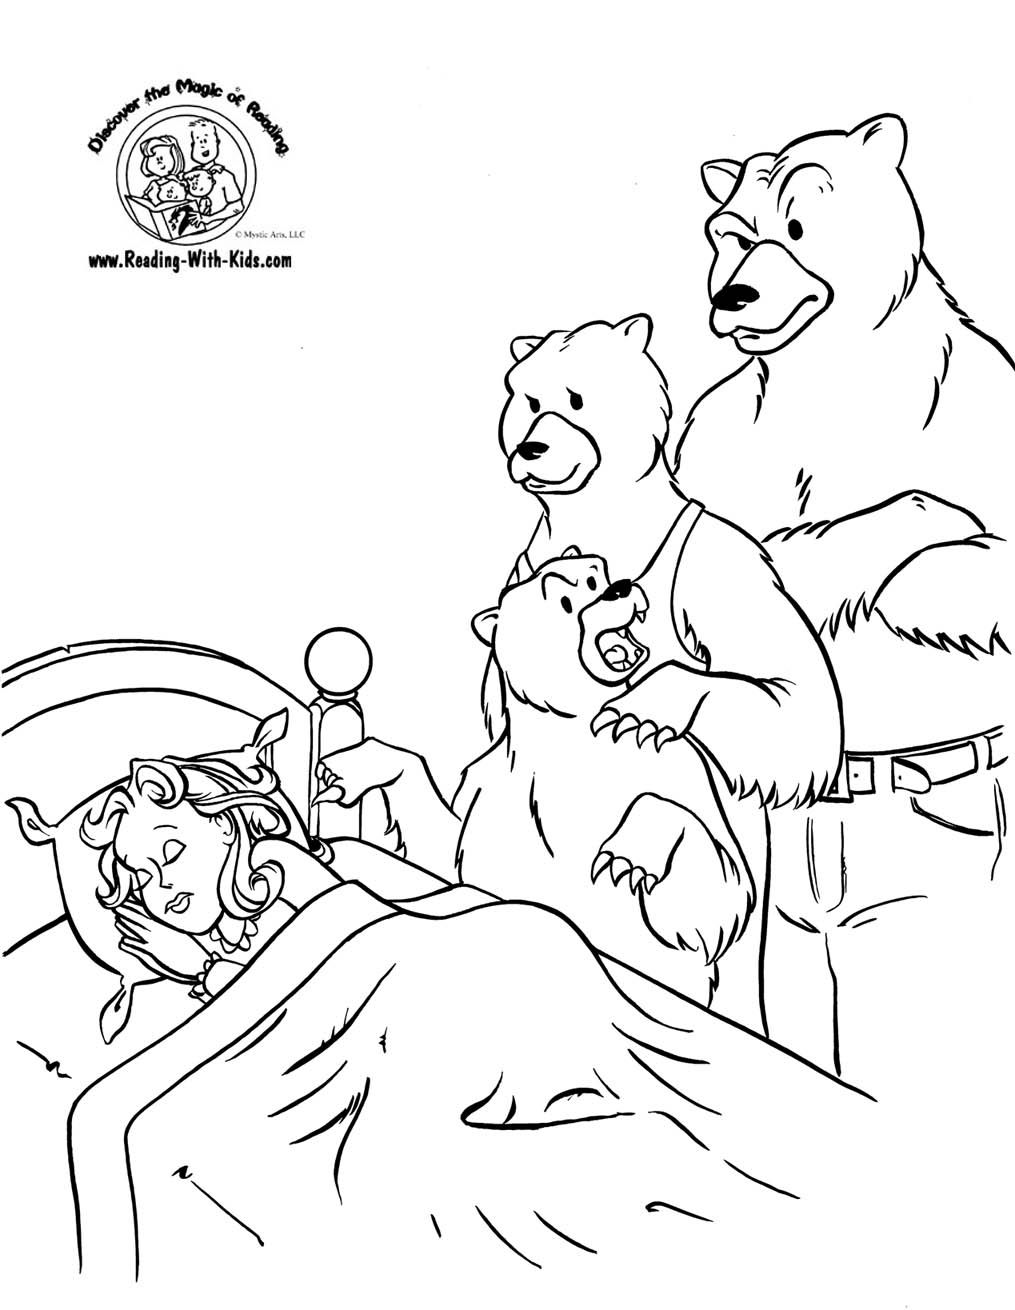 Fairy Tale Coloring Pages Bear Coloring Pages Goldilocks And The Three Bears Coloring Pages